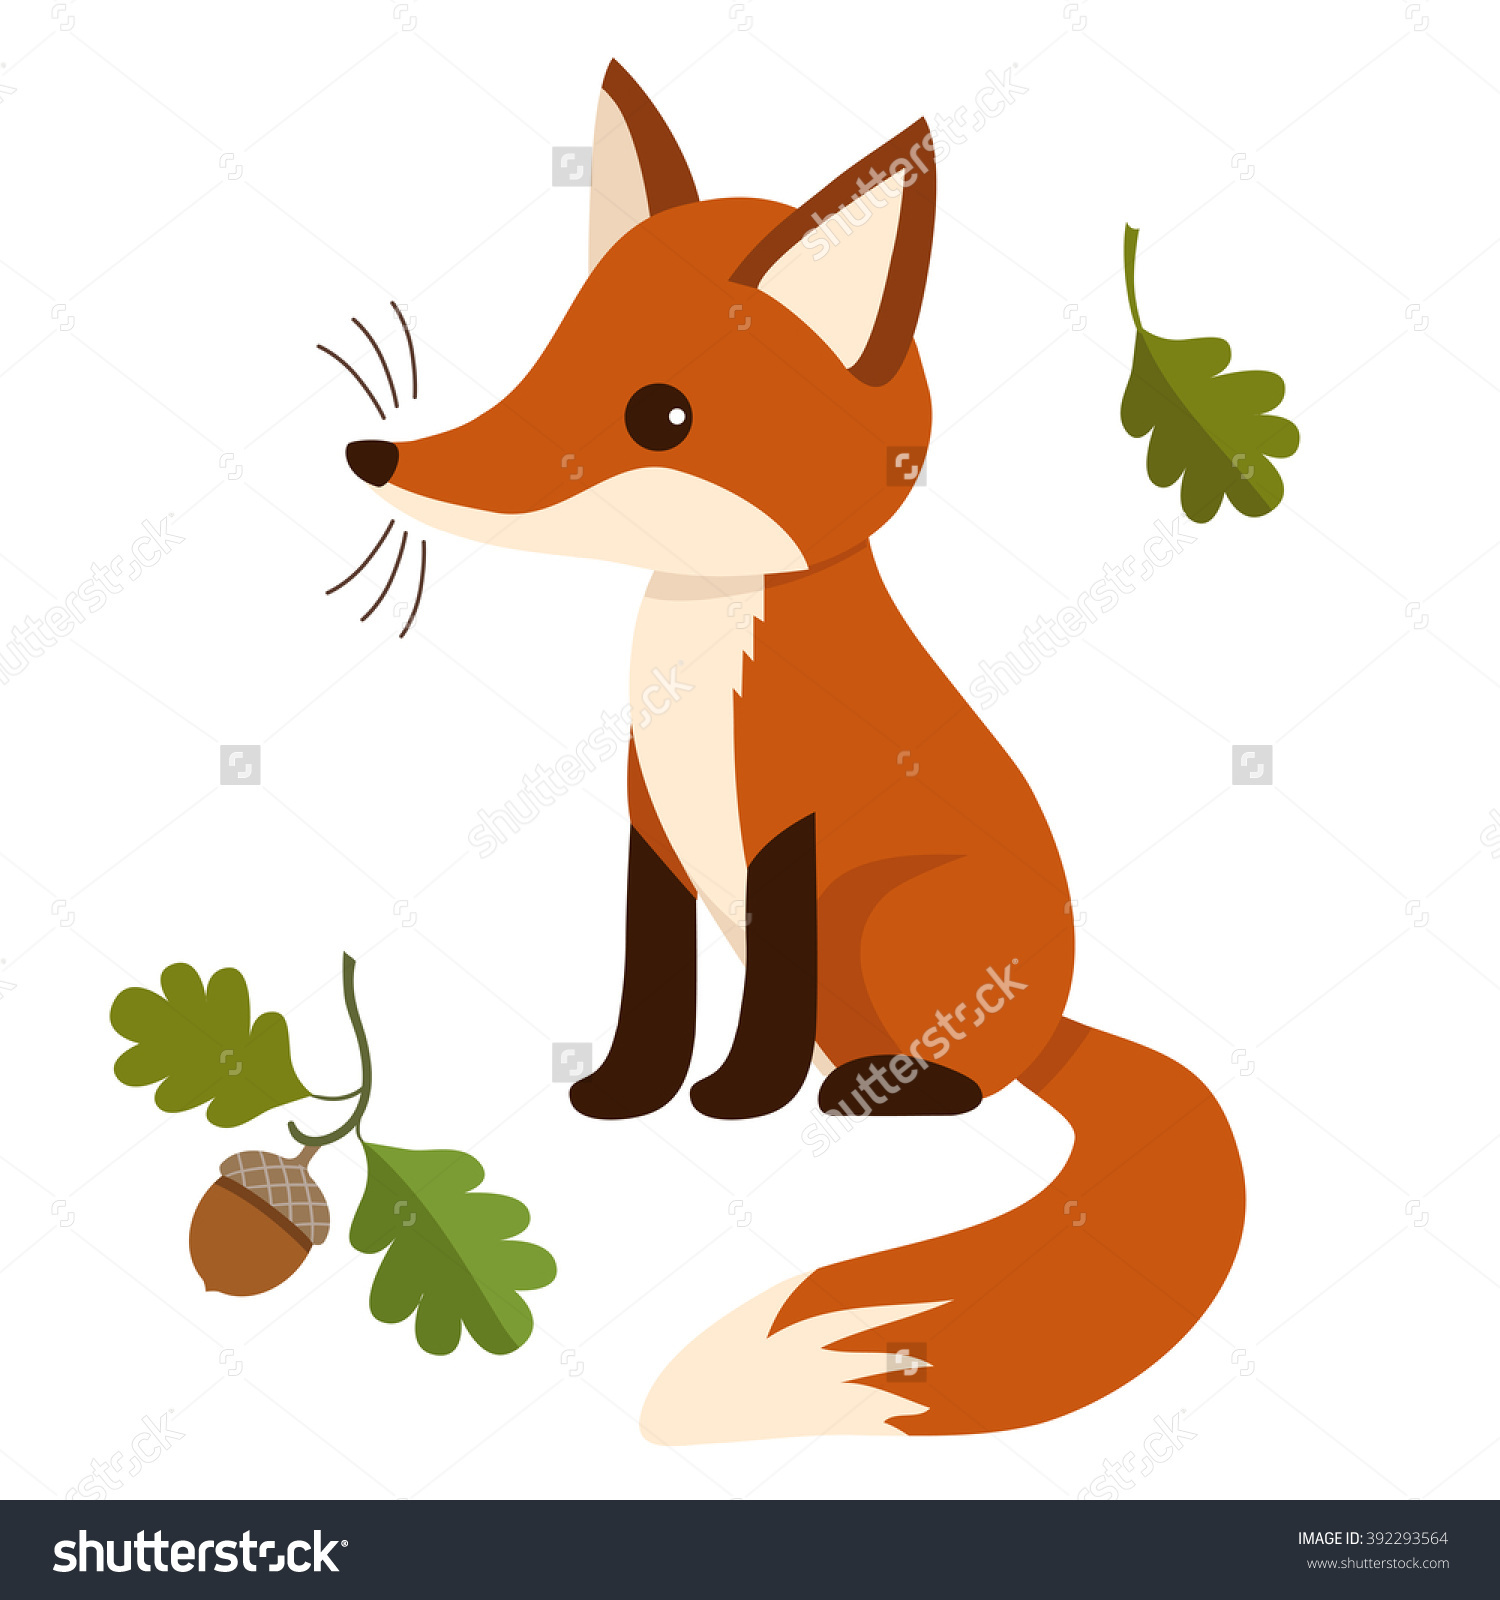 Red Fox clipart #3, Download drawings